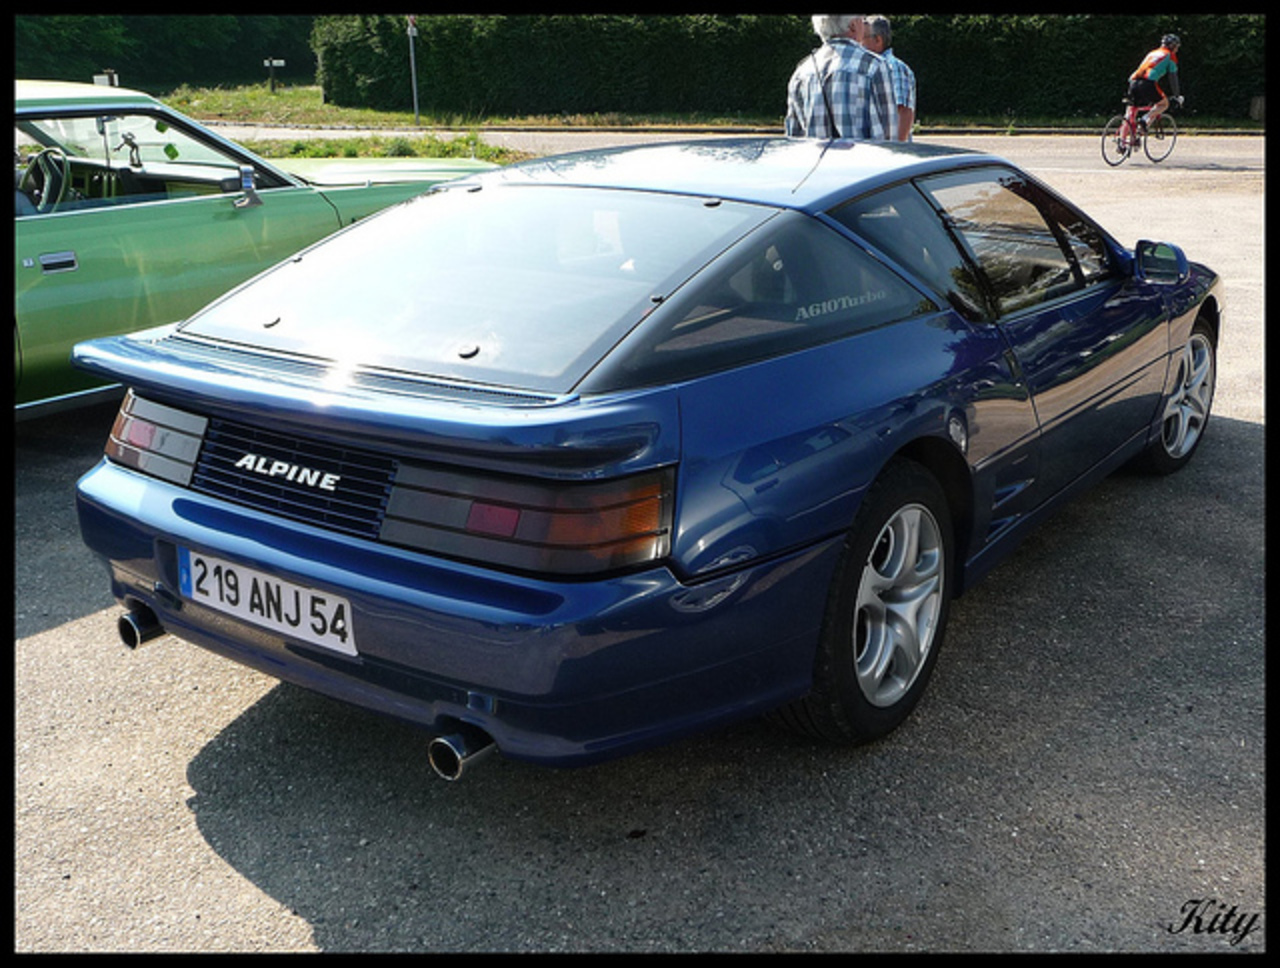 Renault Alpine A610 V6 Turbo | Flickr - Photo Sharing!